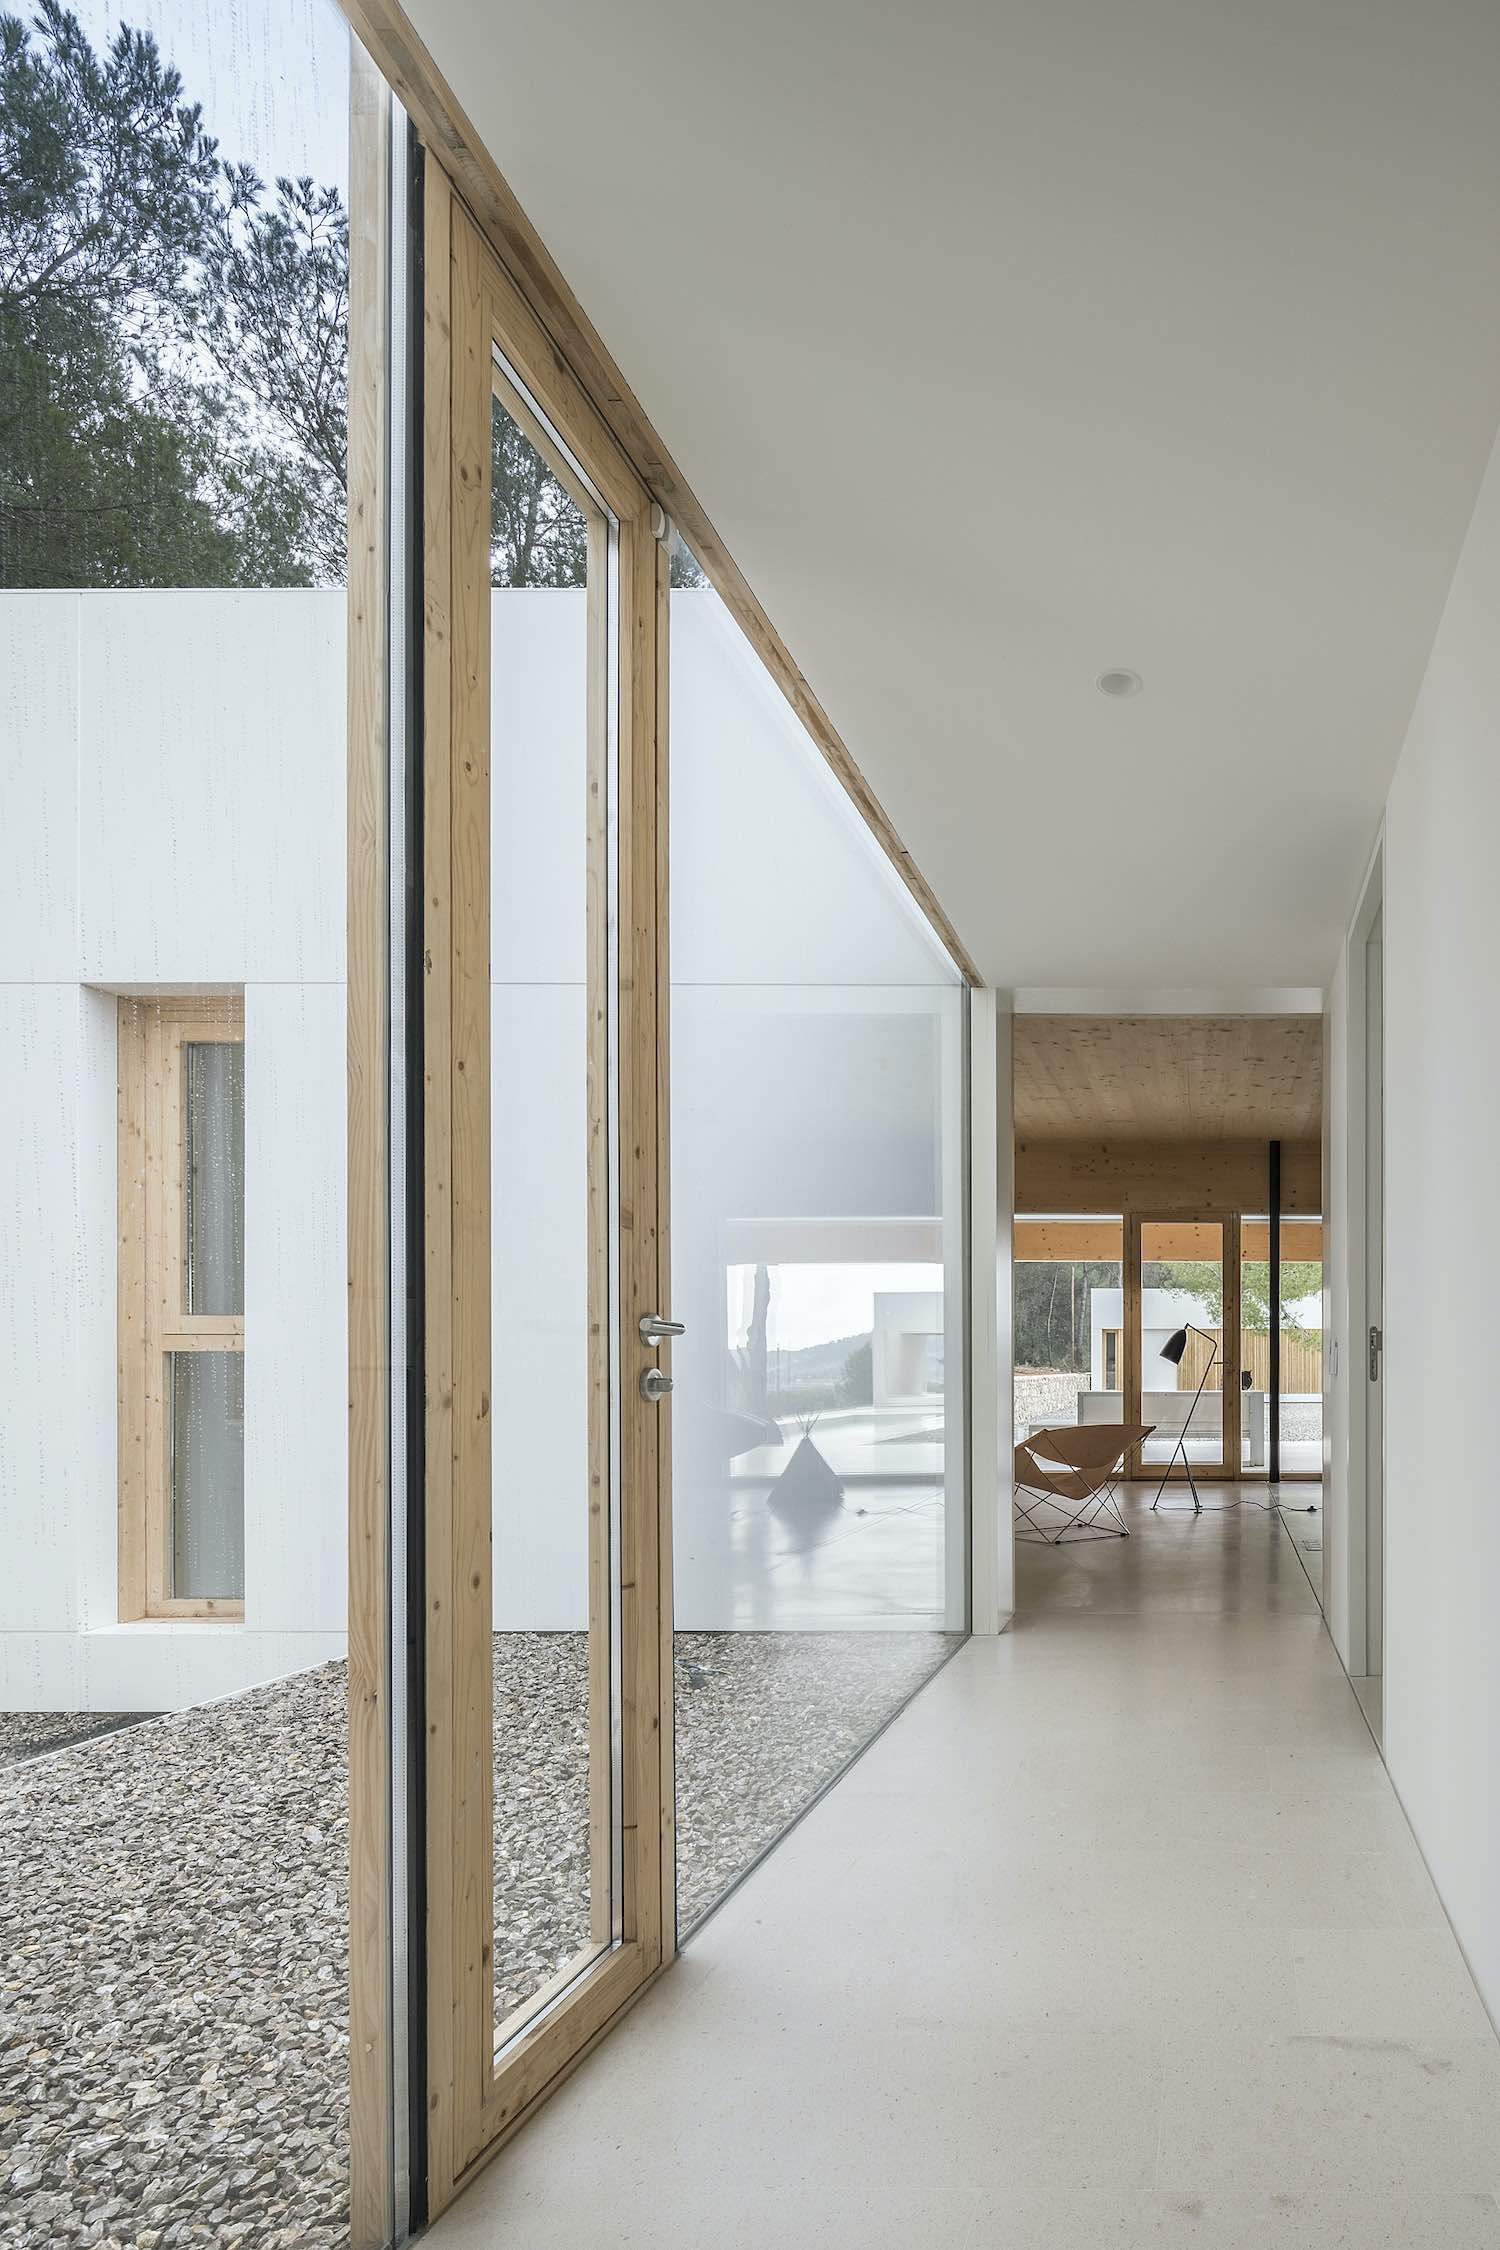 the sun light enters the house through large glass windows